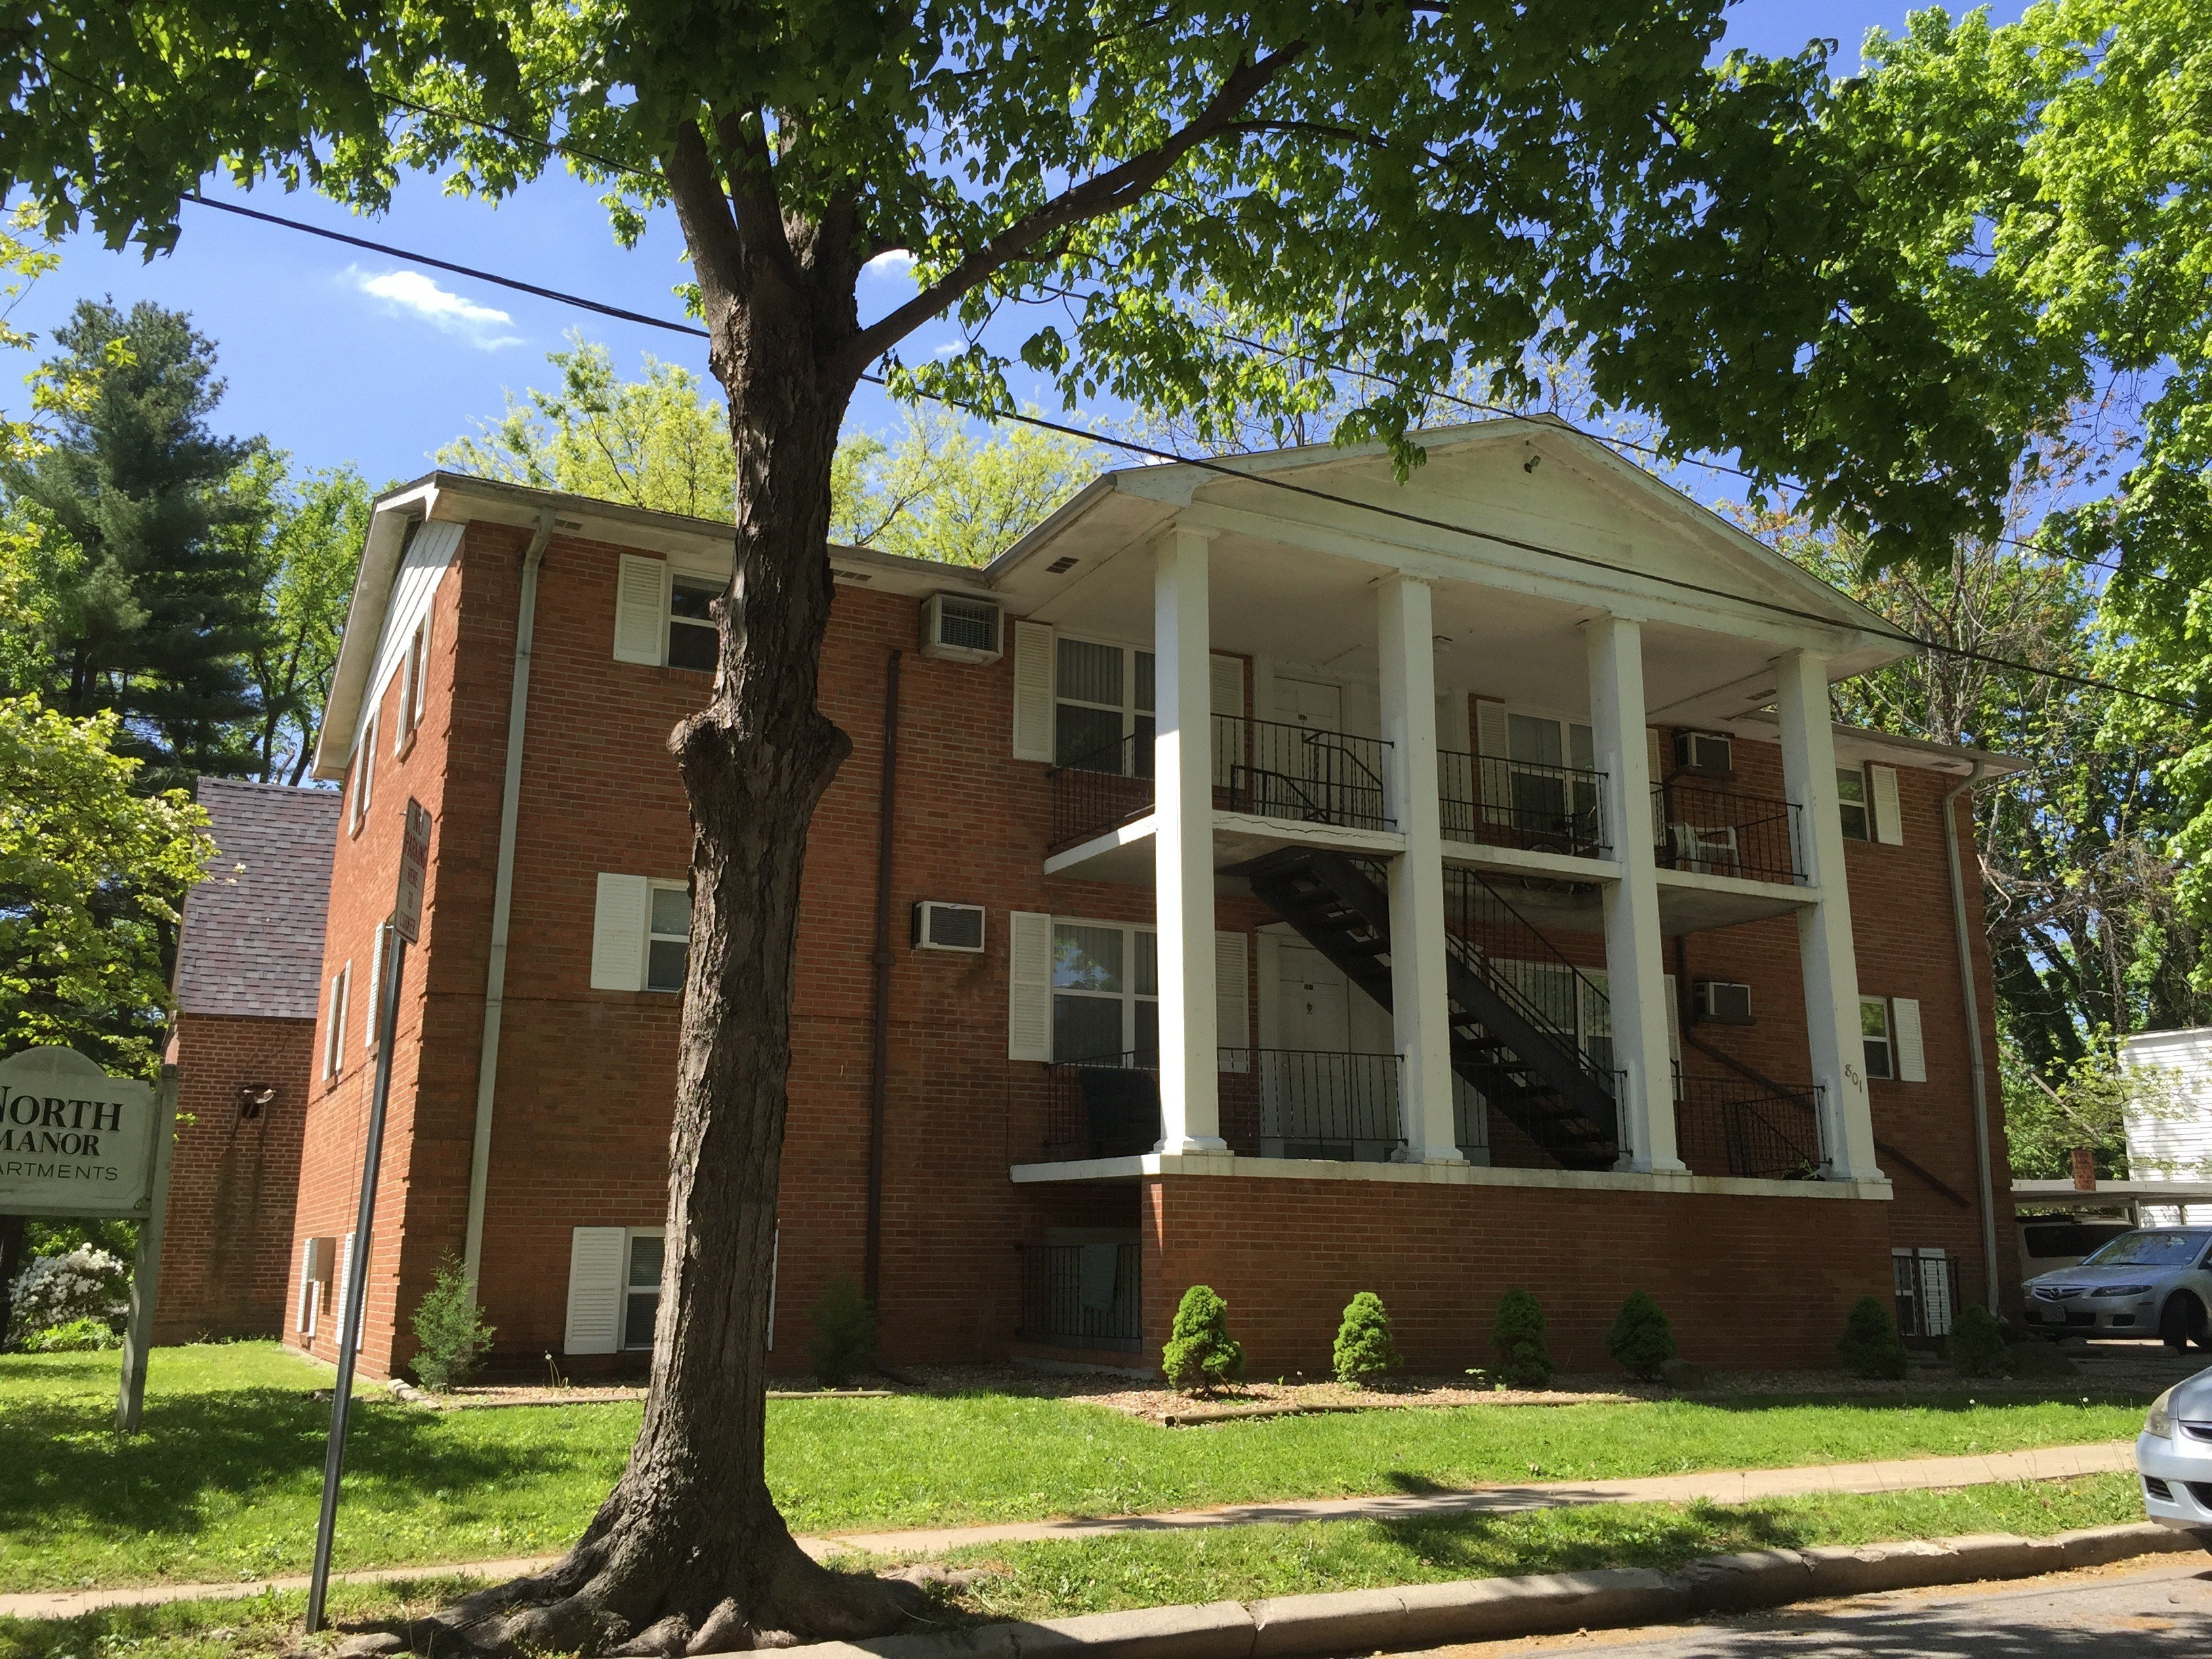 Best 801 North St Cape Girardeau Mo 63701 1 Bedroom Apartment For Rent Padmapper With Pictures